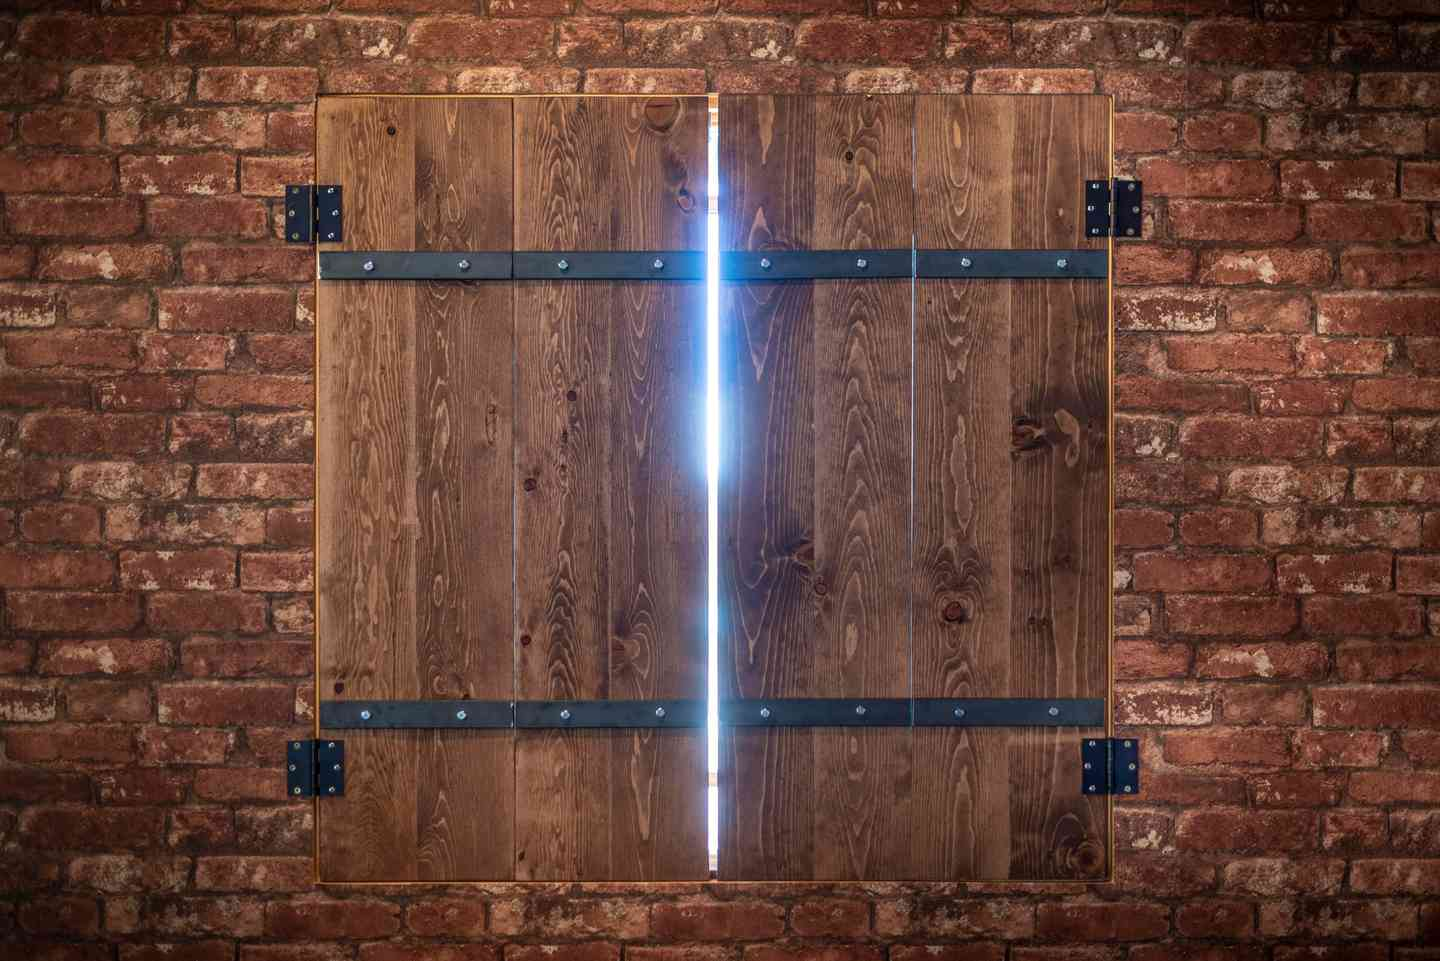 Door with a sliver of light shining through